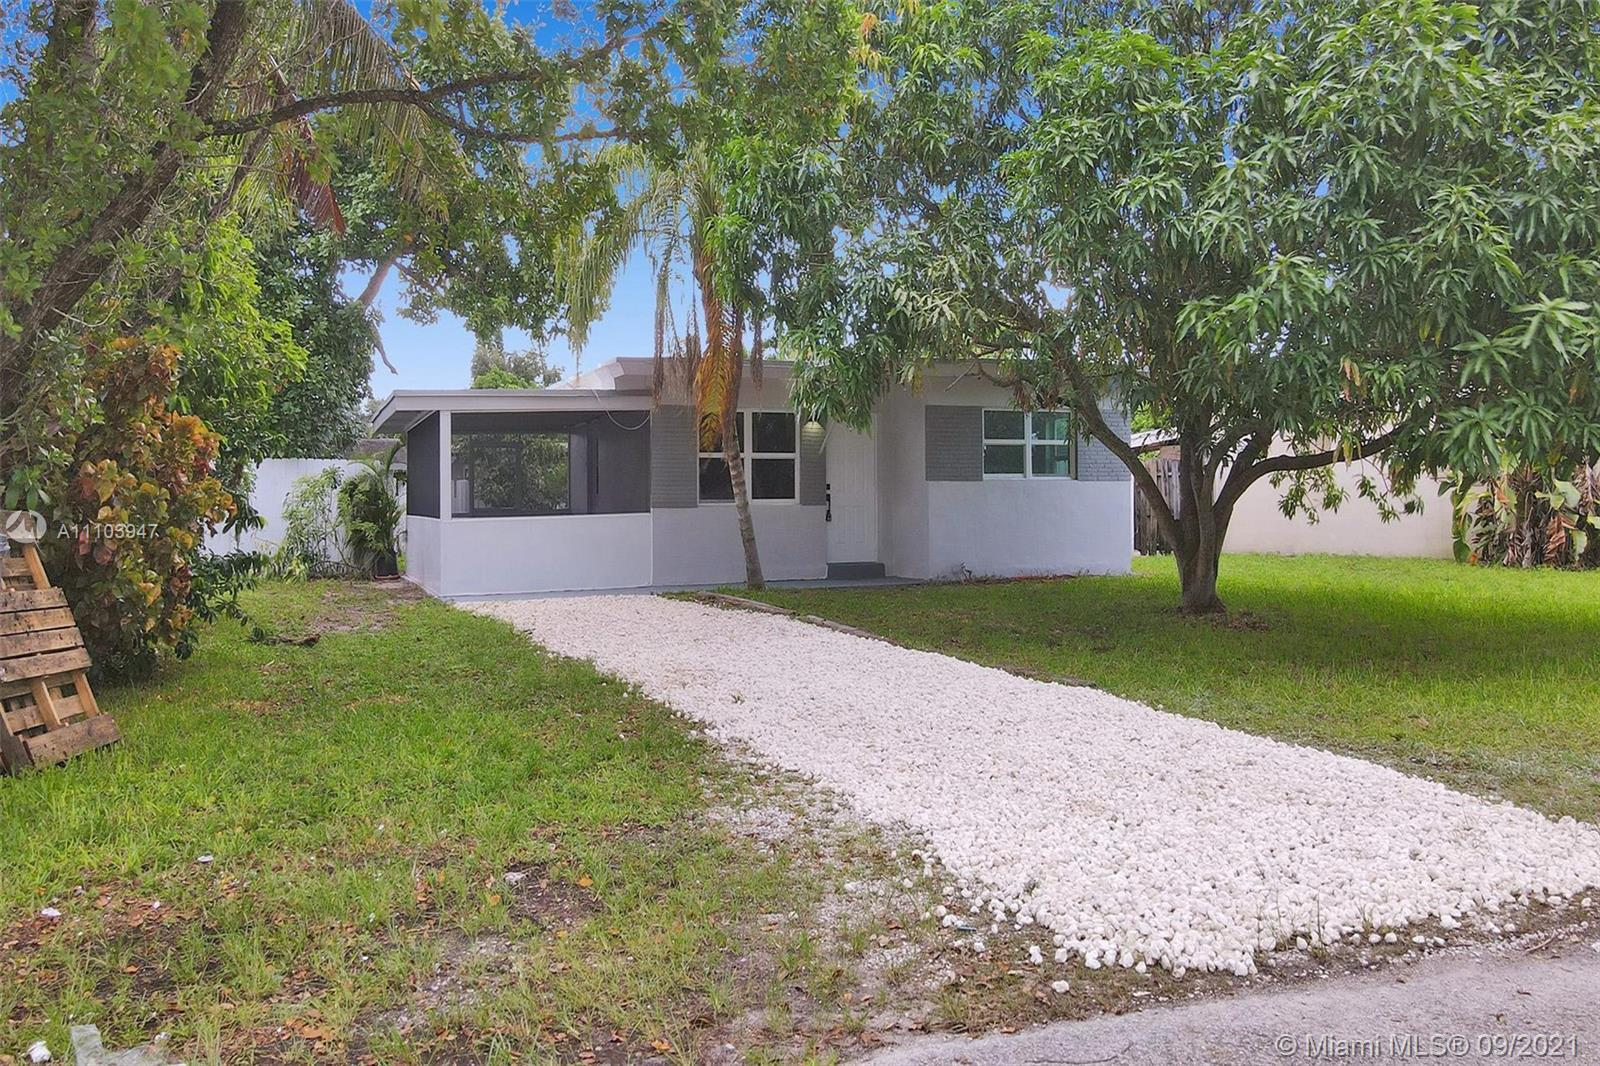 Remodeled 2 bedrooms and 1 full bath. Property features a screened in porch with full access to over